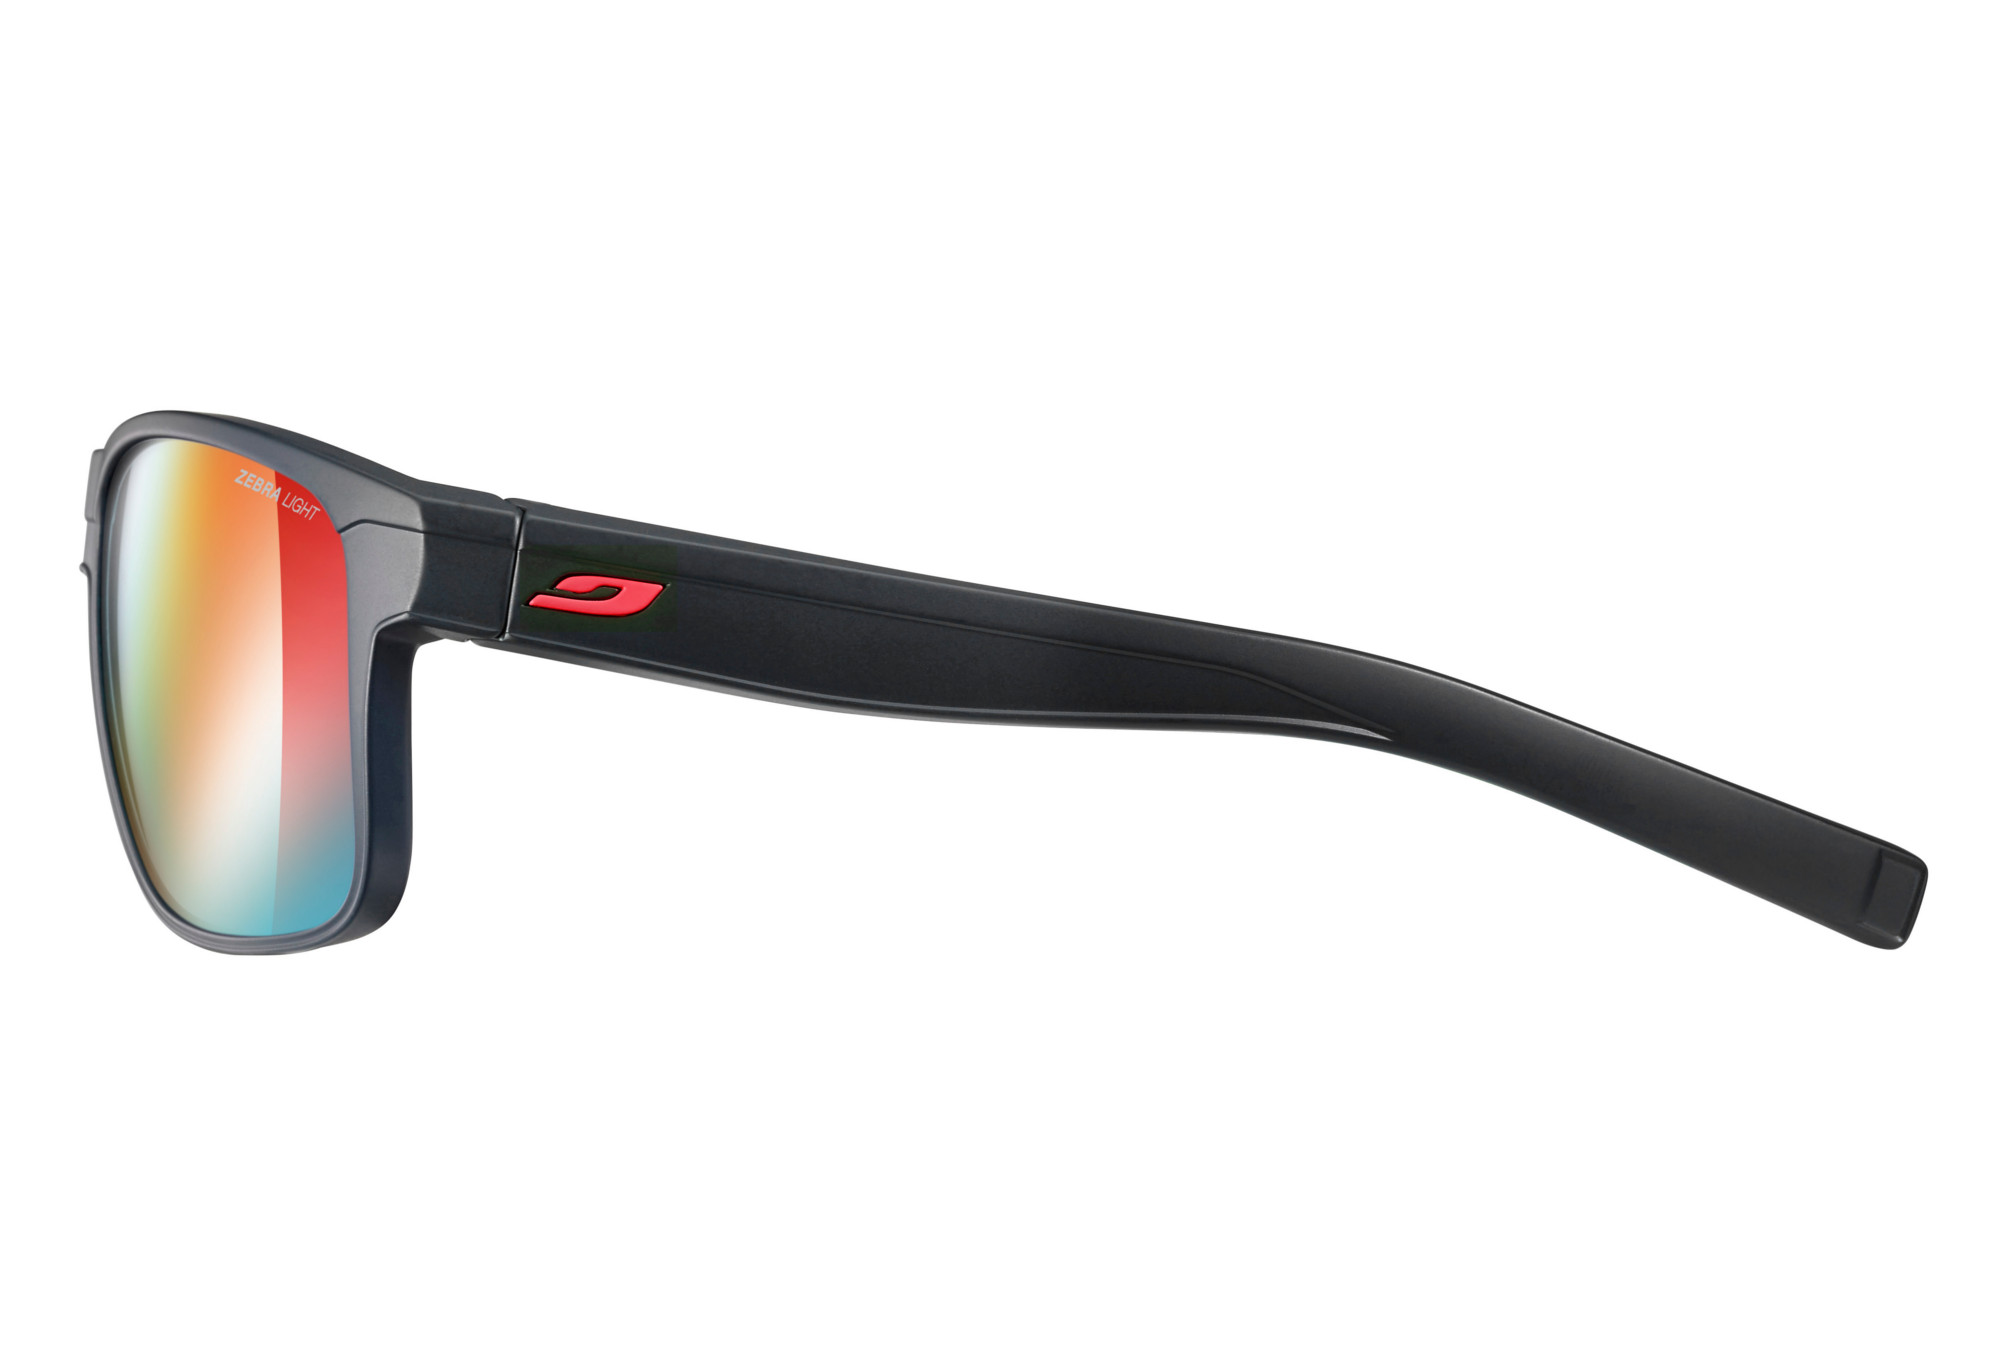 1197c3af81 Julbo Renegade Sunglasses Zebra Light Black - Red